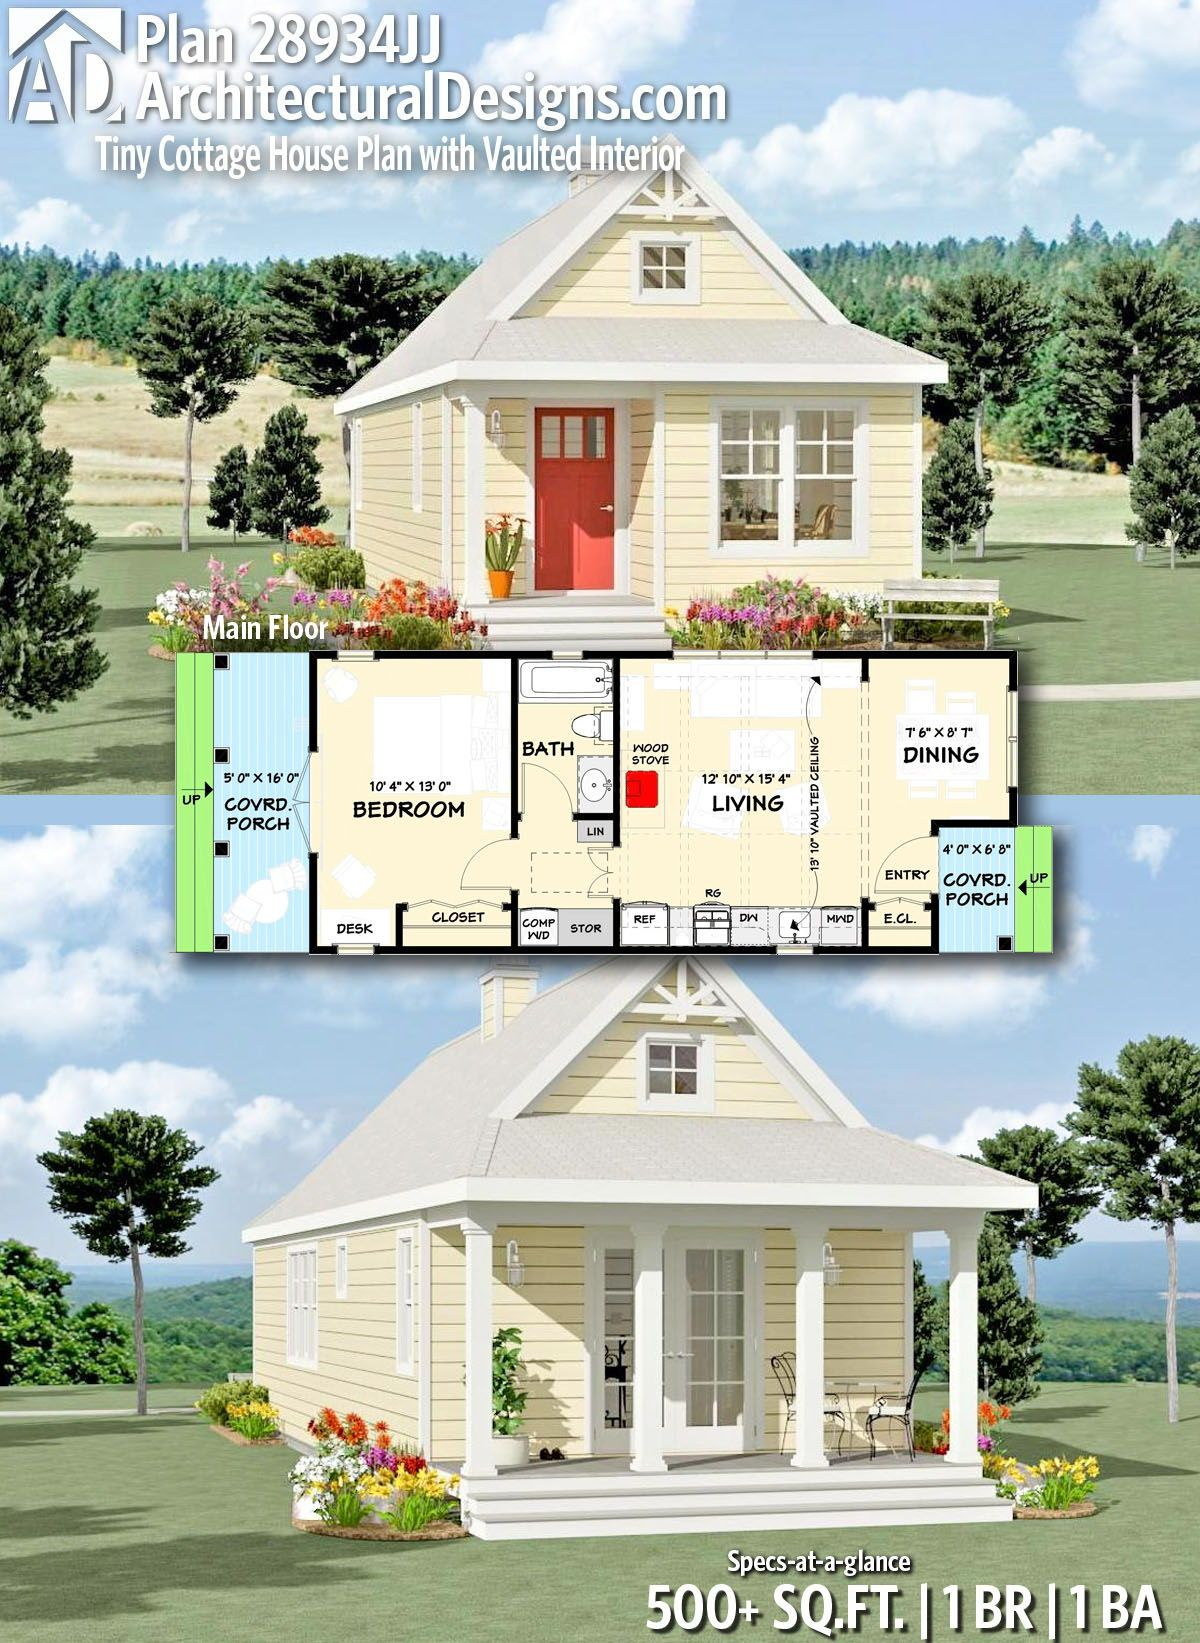 Plan 28934jj Tiny Cottage House Plan With Vaulted Interior Cottage House Plans Small Cottage House Plans Small Cottage Homes